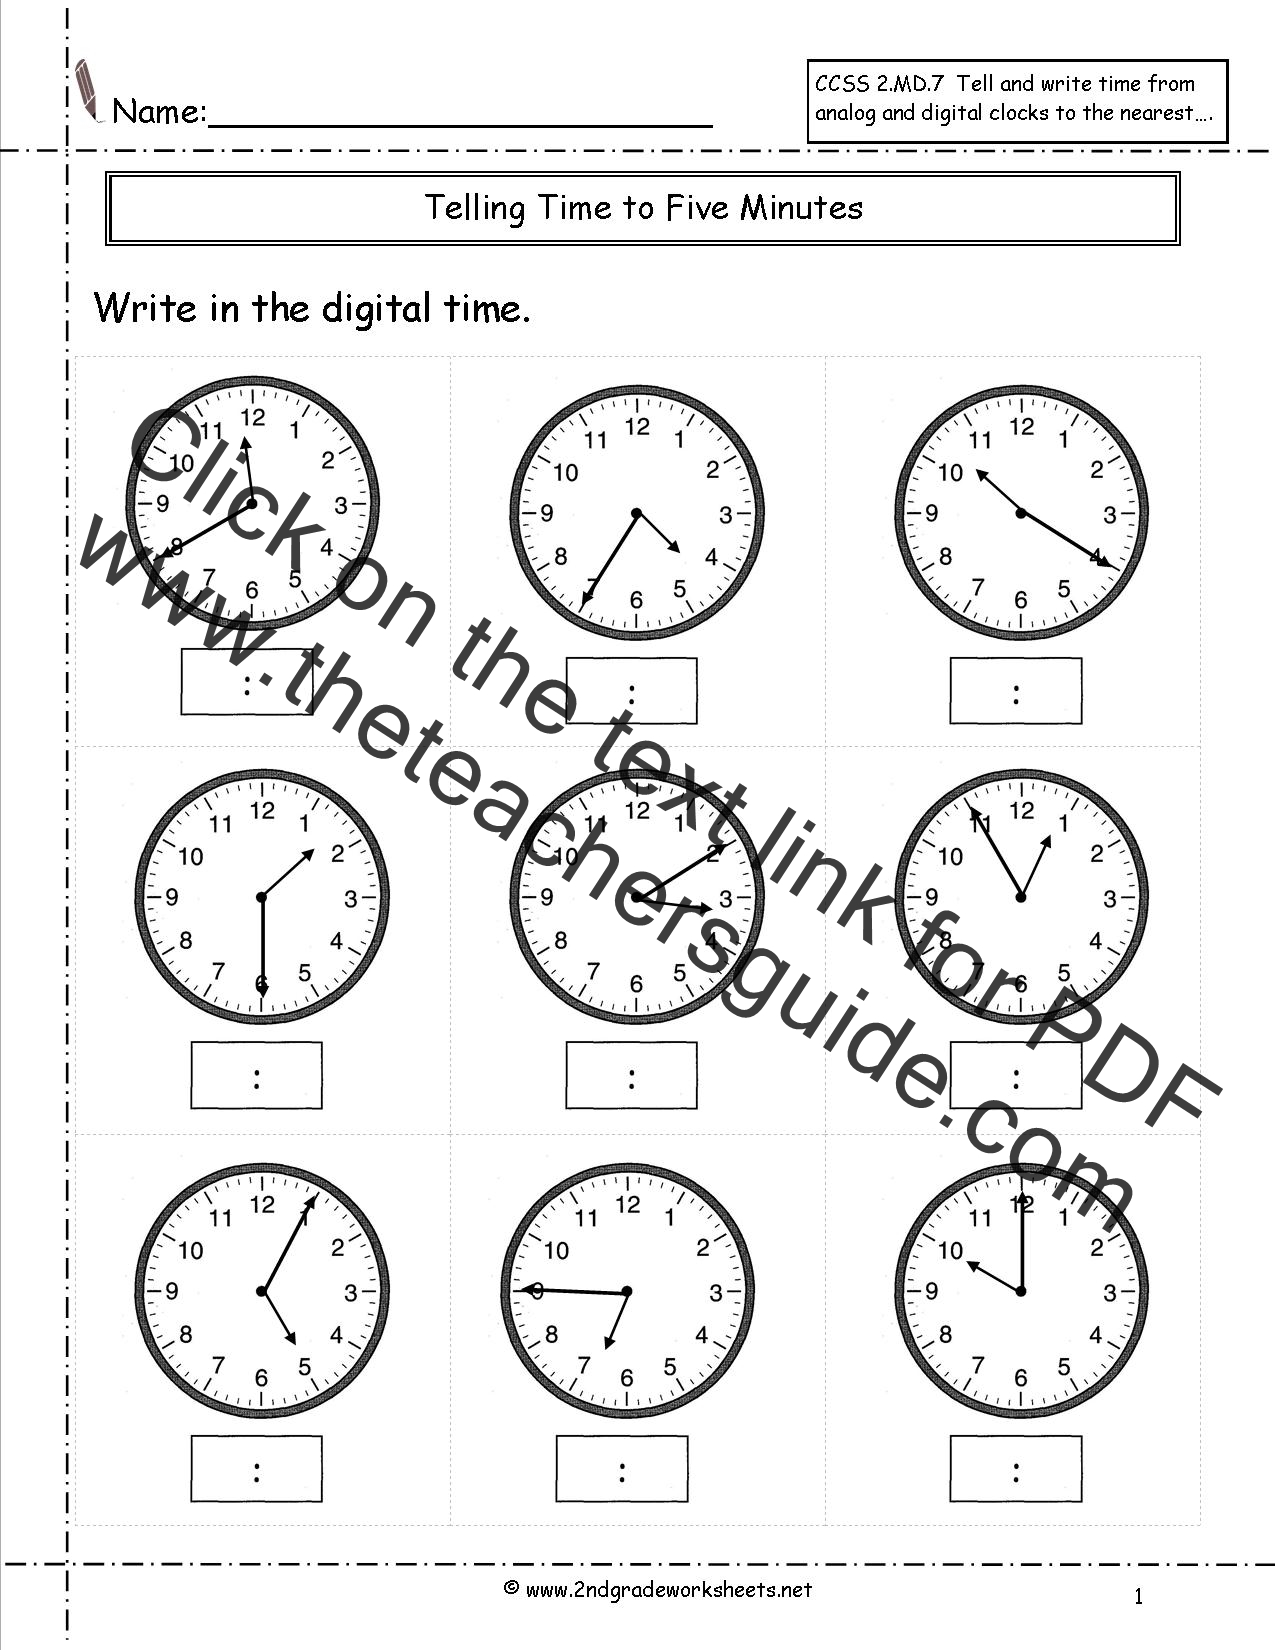 Worksheets Telling Time Worksheets 2nd Grade telling and writing time worksheets to nearest five minutes worksheet